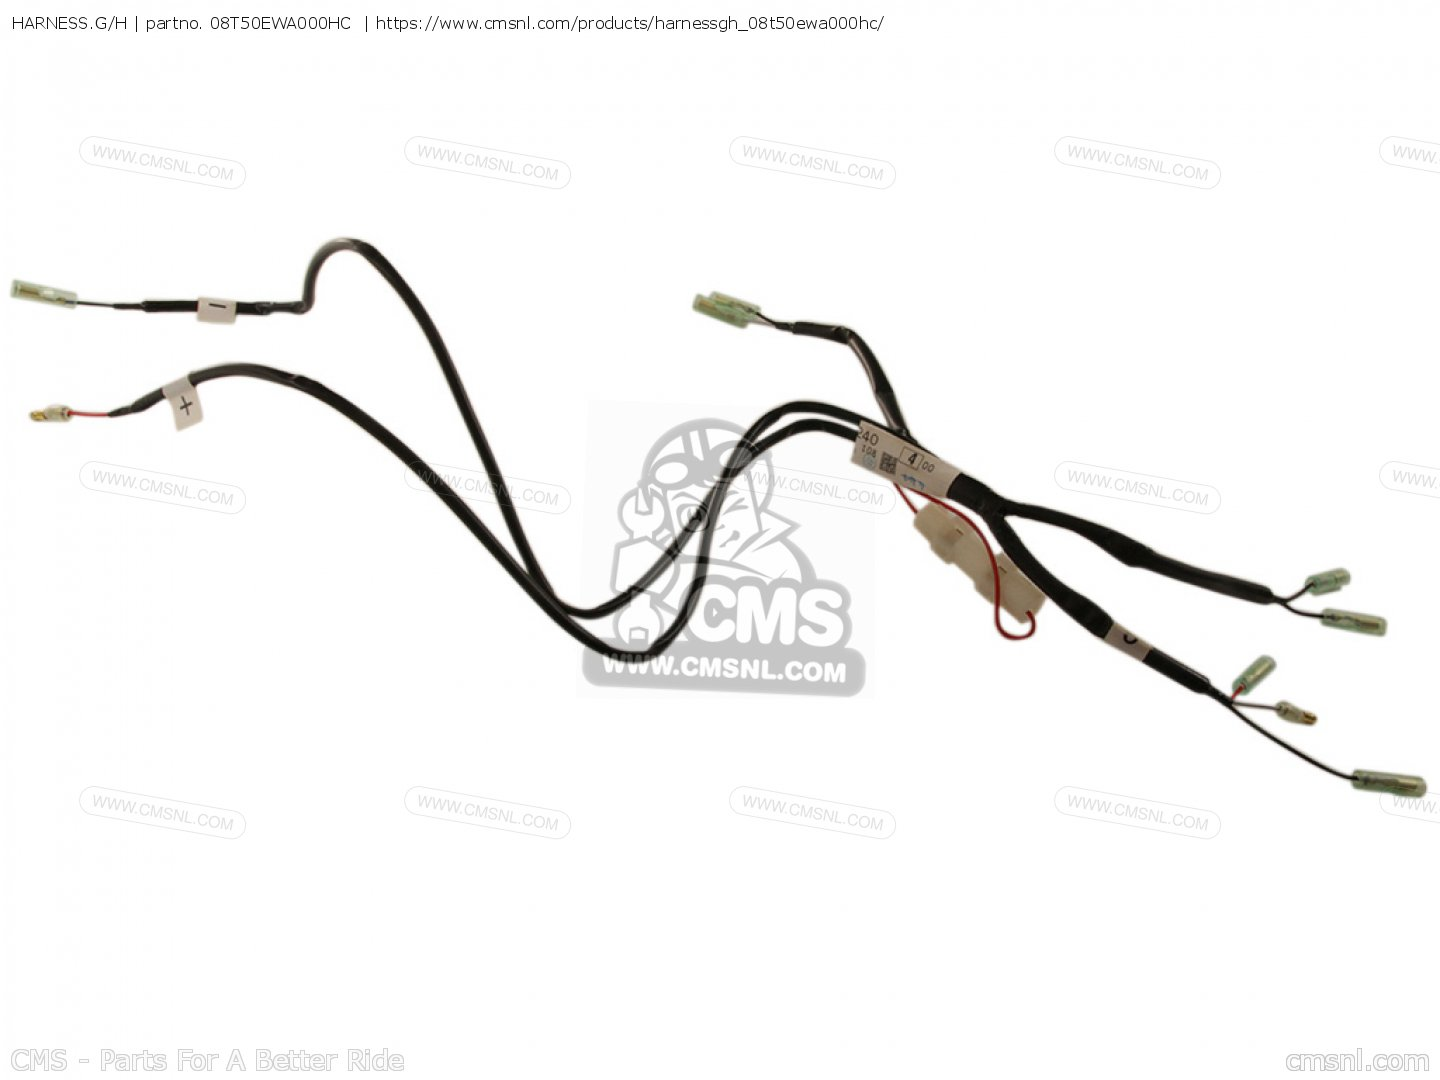 HARNESS.G/H for NT700V 2006 (6) EUROPEAN DIRECT SALES